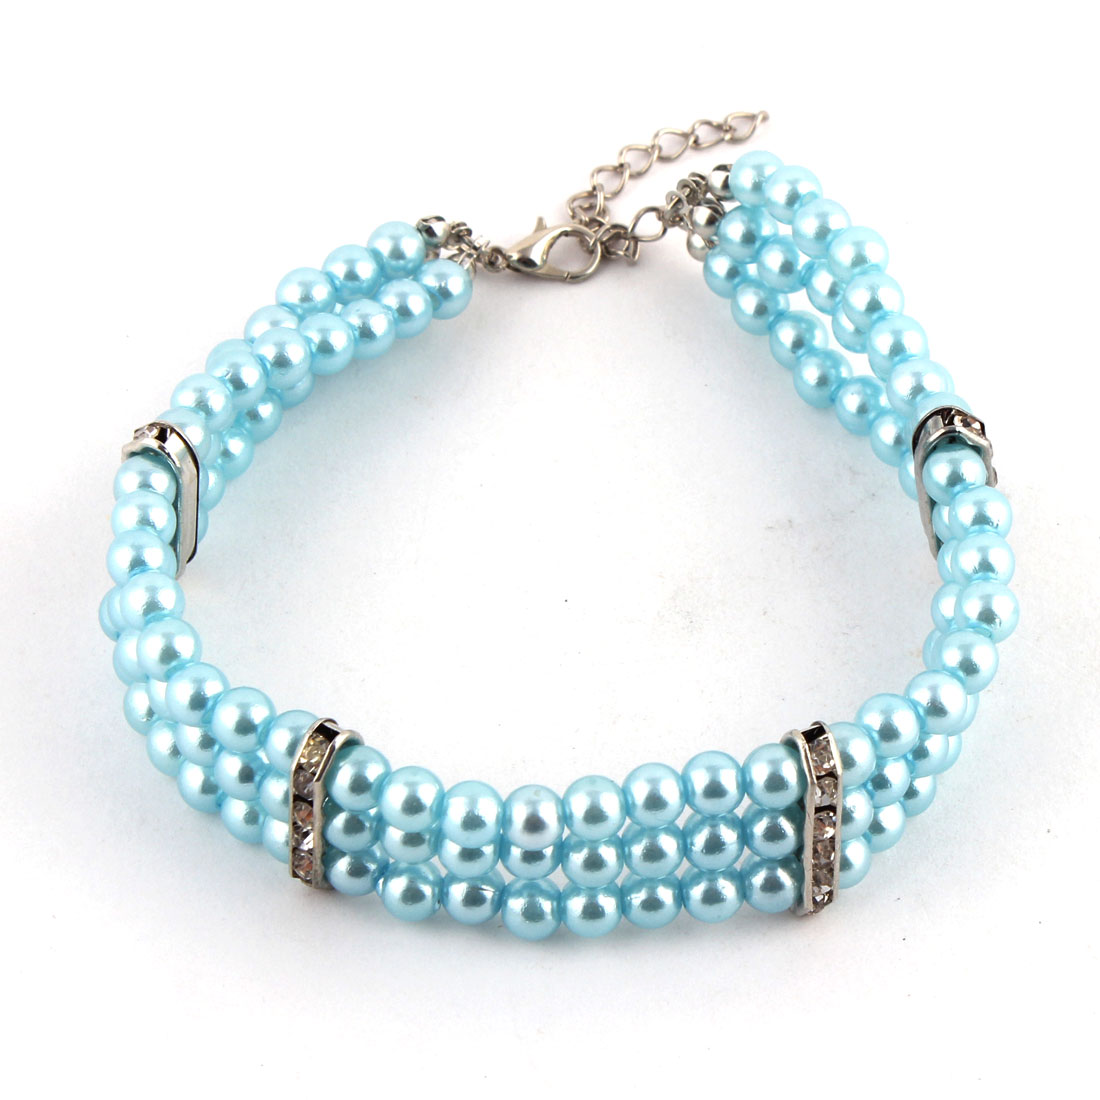 Pet Dog Plastic Three Rows Round Beads Linked Collar Necklace Cyan